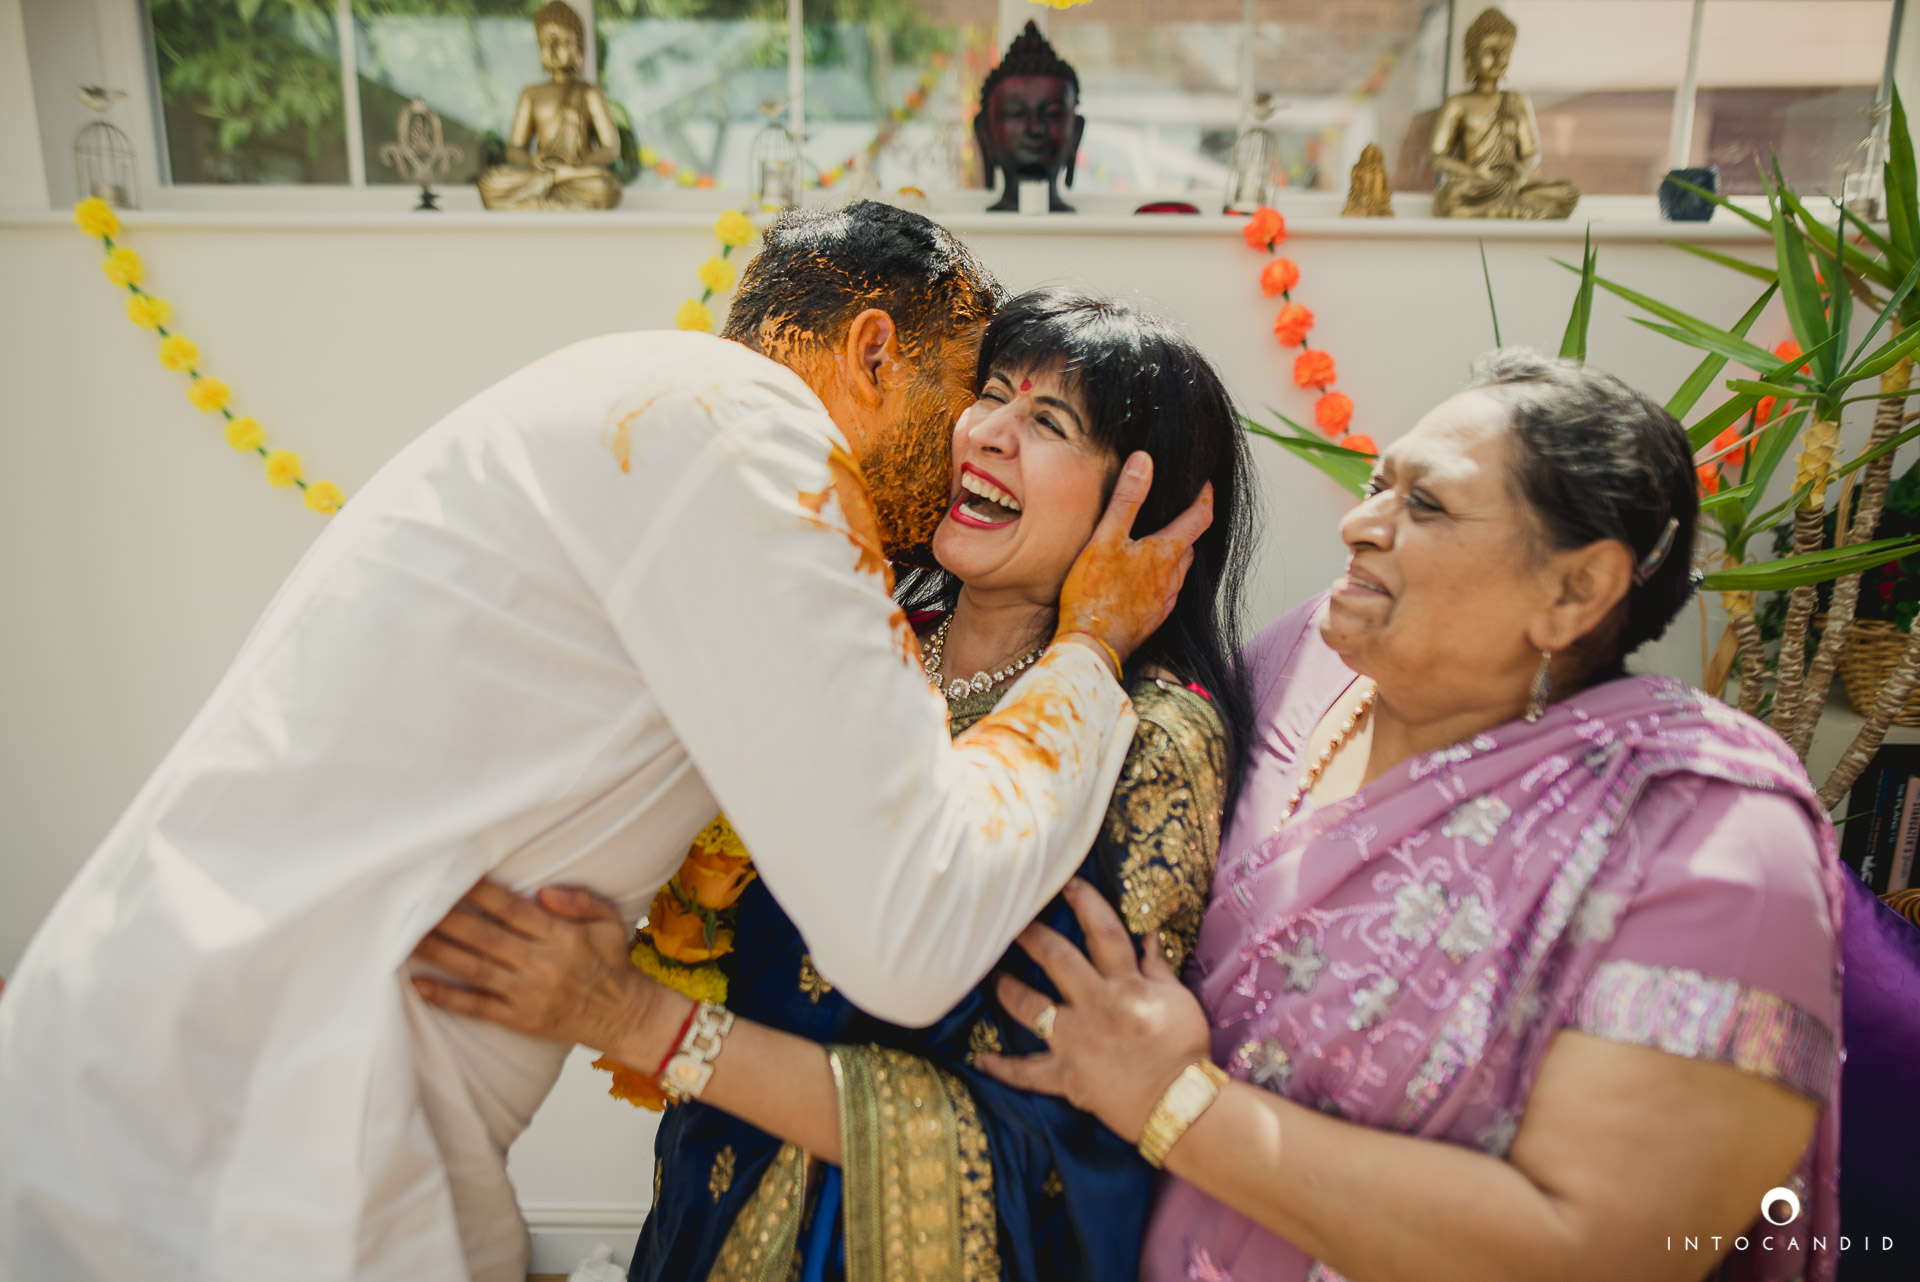 London_Wedding_Photographer_Intocandid_Photography_Ketan & Manasvi_14.JPG